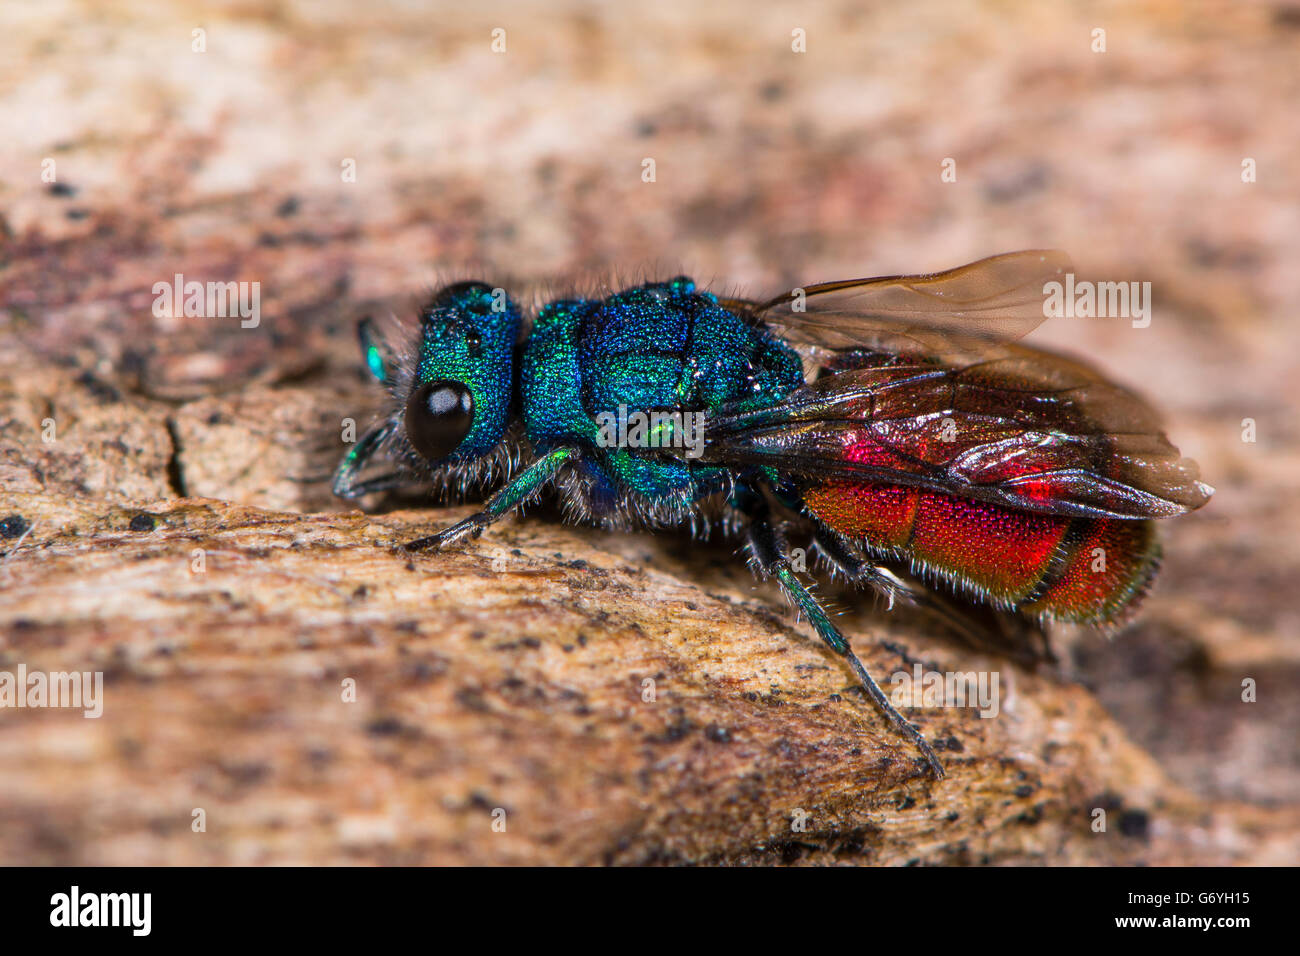 Ruby-tailed wasp (Chrysis sp.). Cuckoo wasp in family Chrysididae with bright metallic blue and red markings, aka - Stock Image